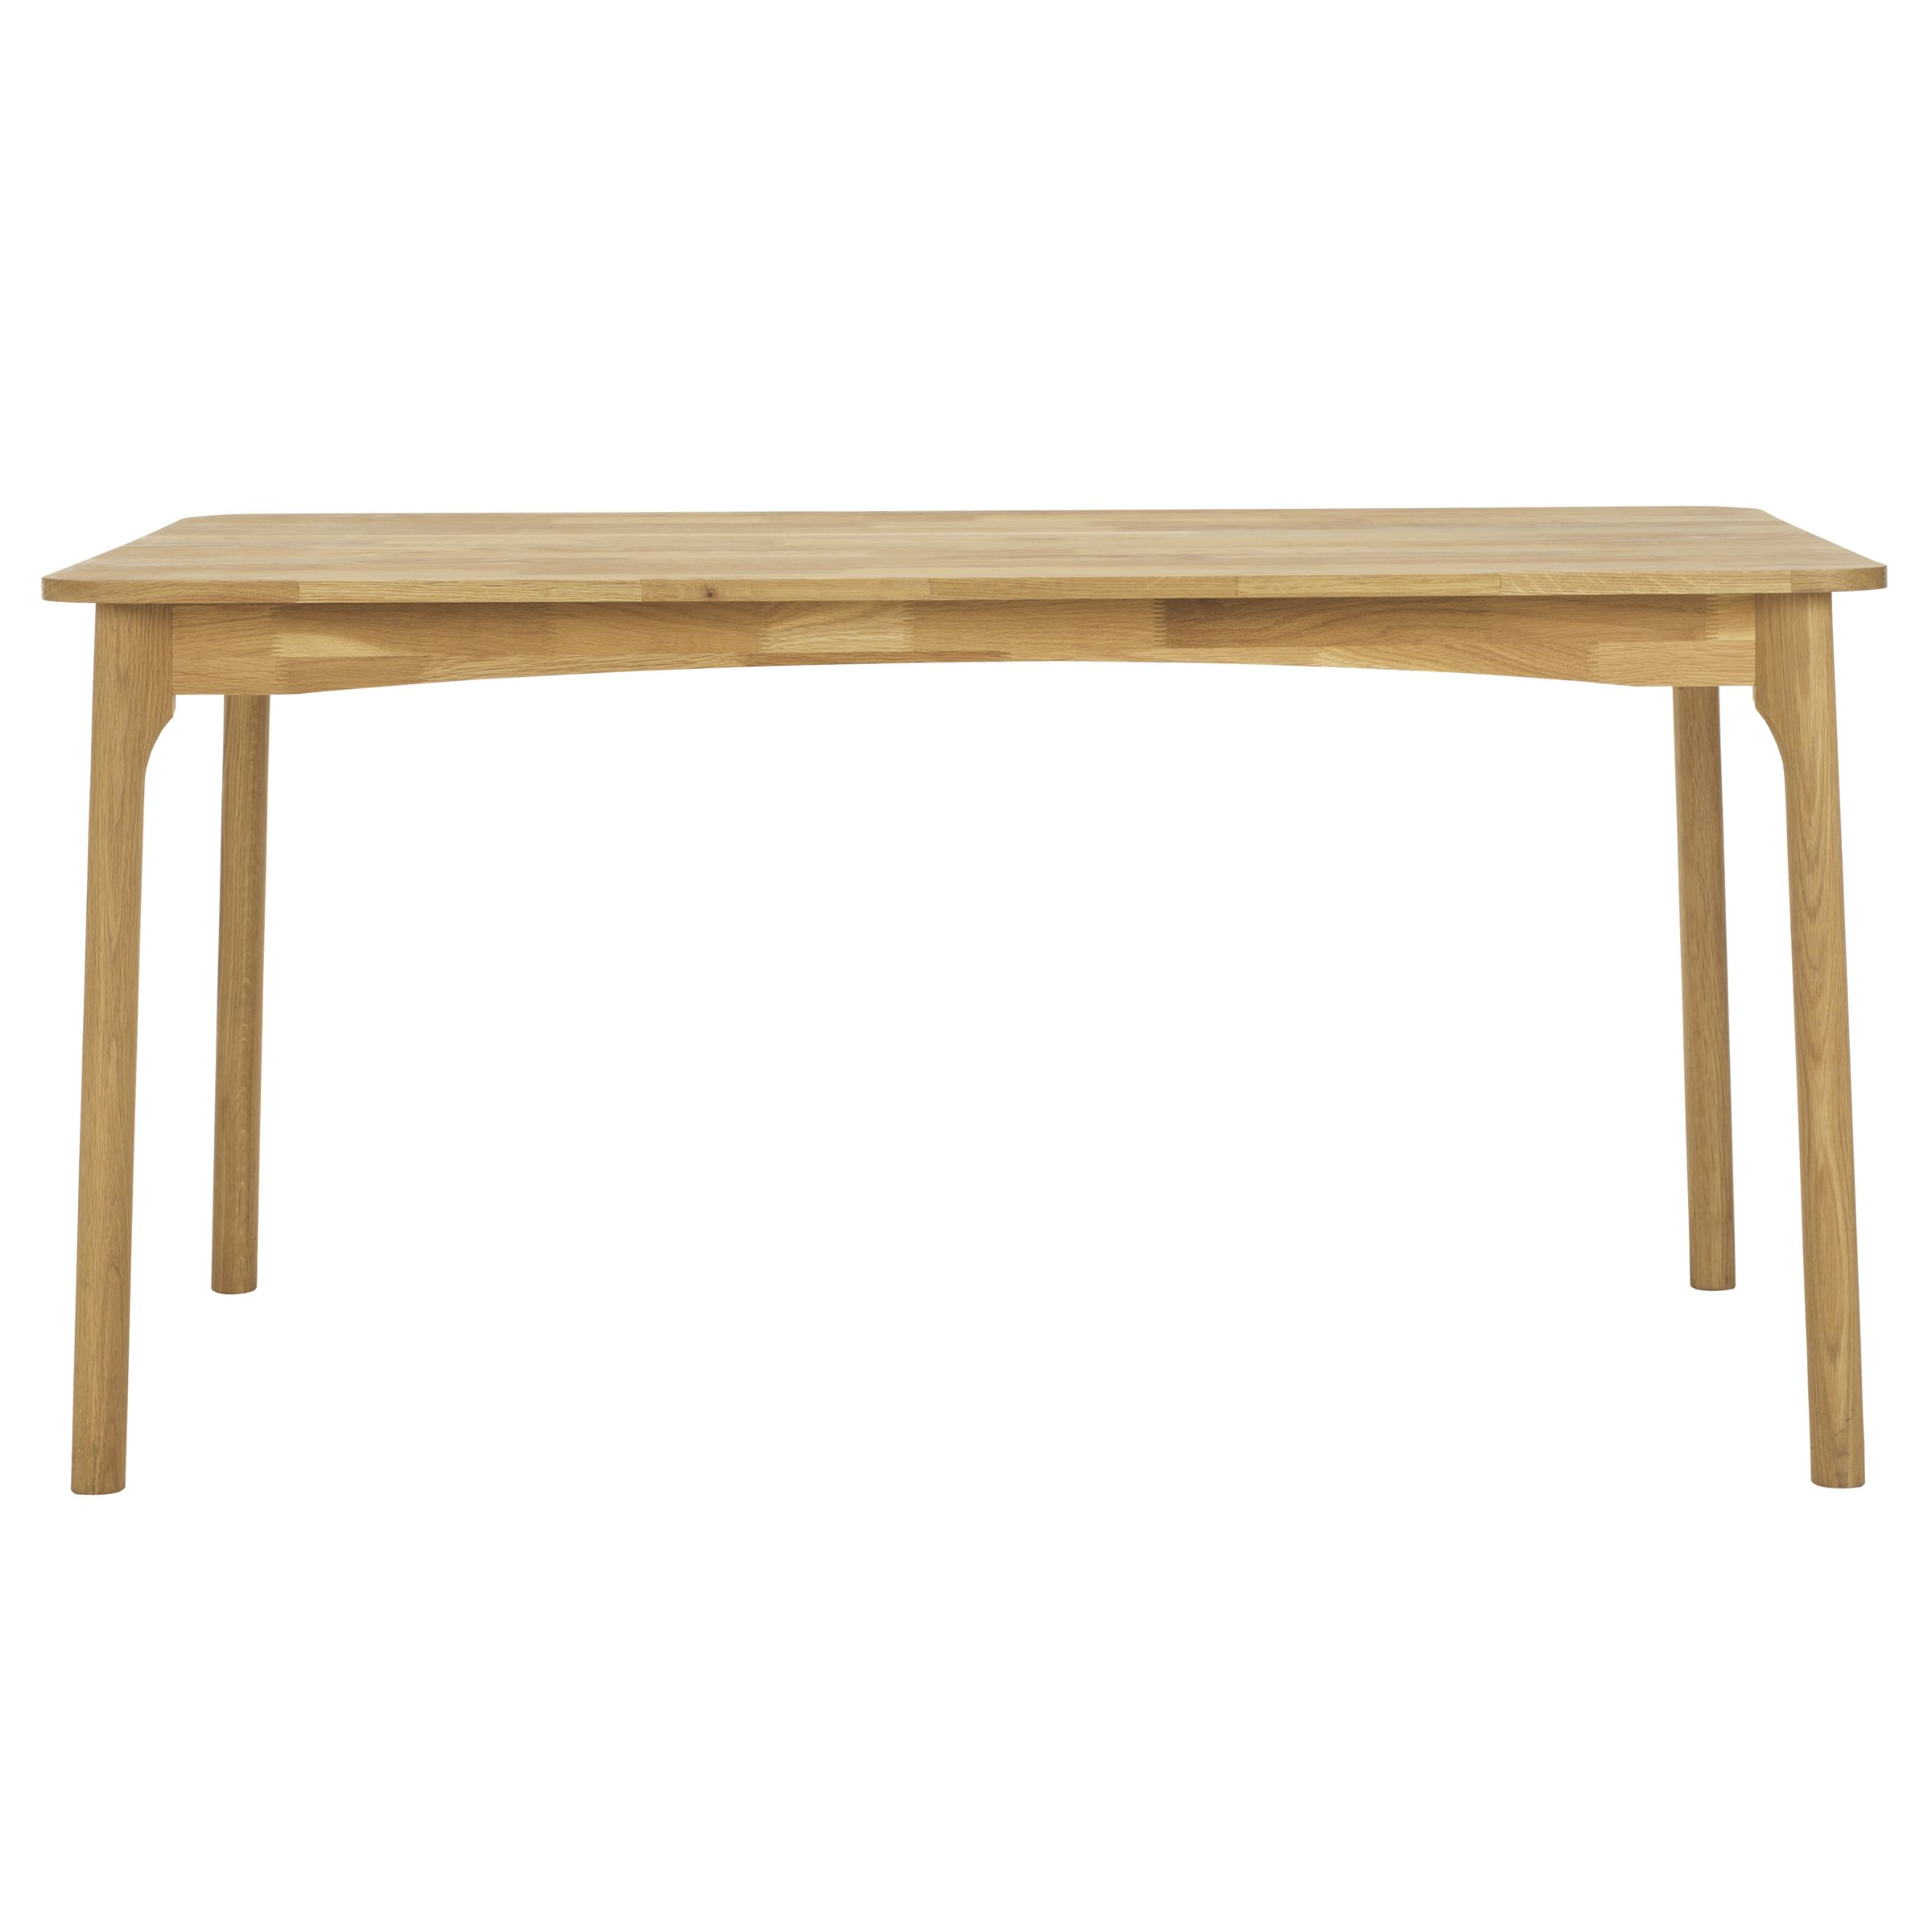 John Lewis Ken Dining Table Oak review compare prices  : 231240700 from www.comparestoreprices.co.uk size 1600 x 1600 jpeg 90kB